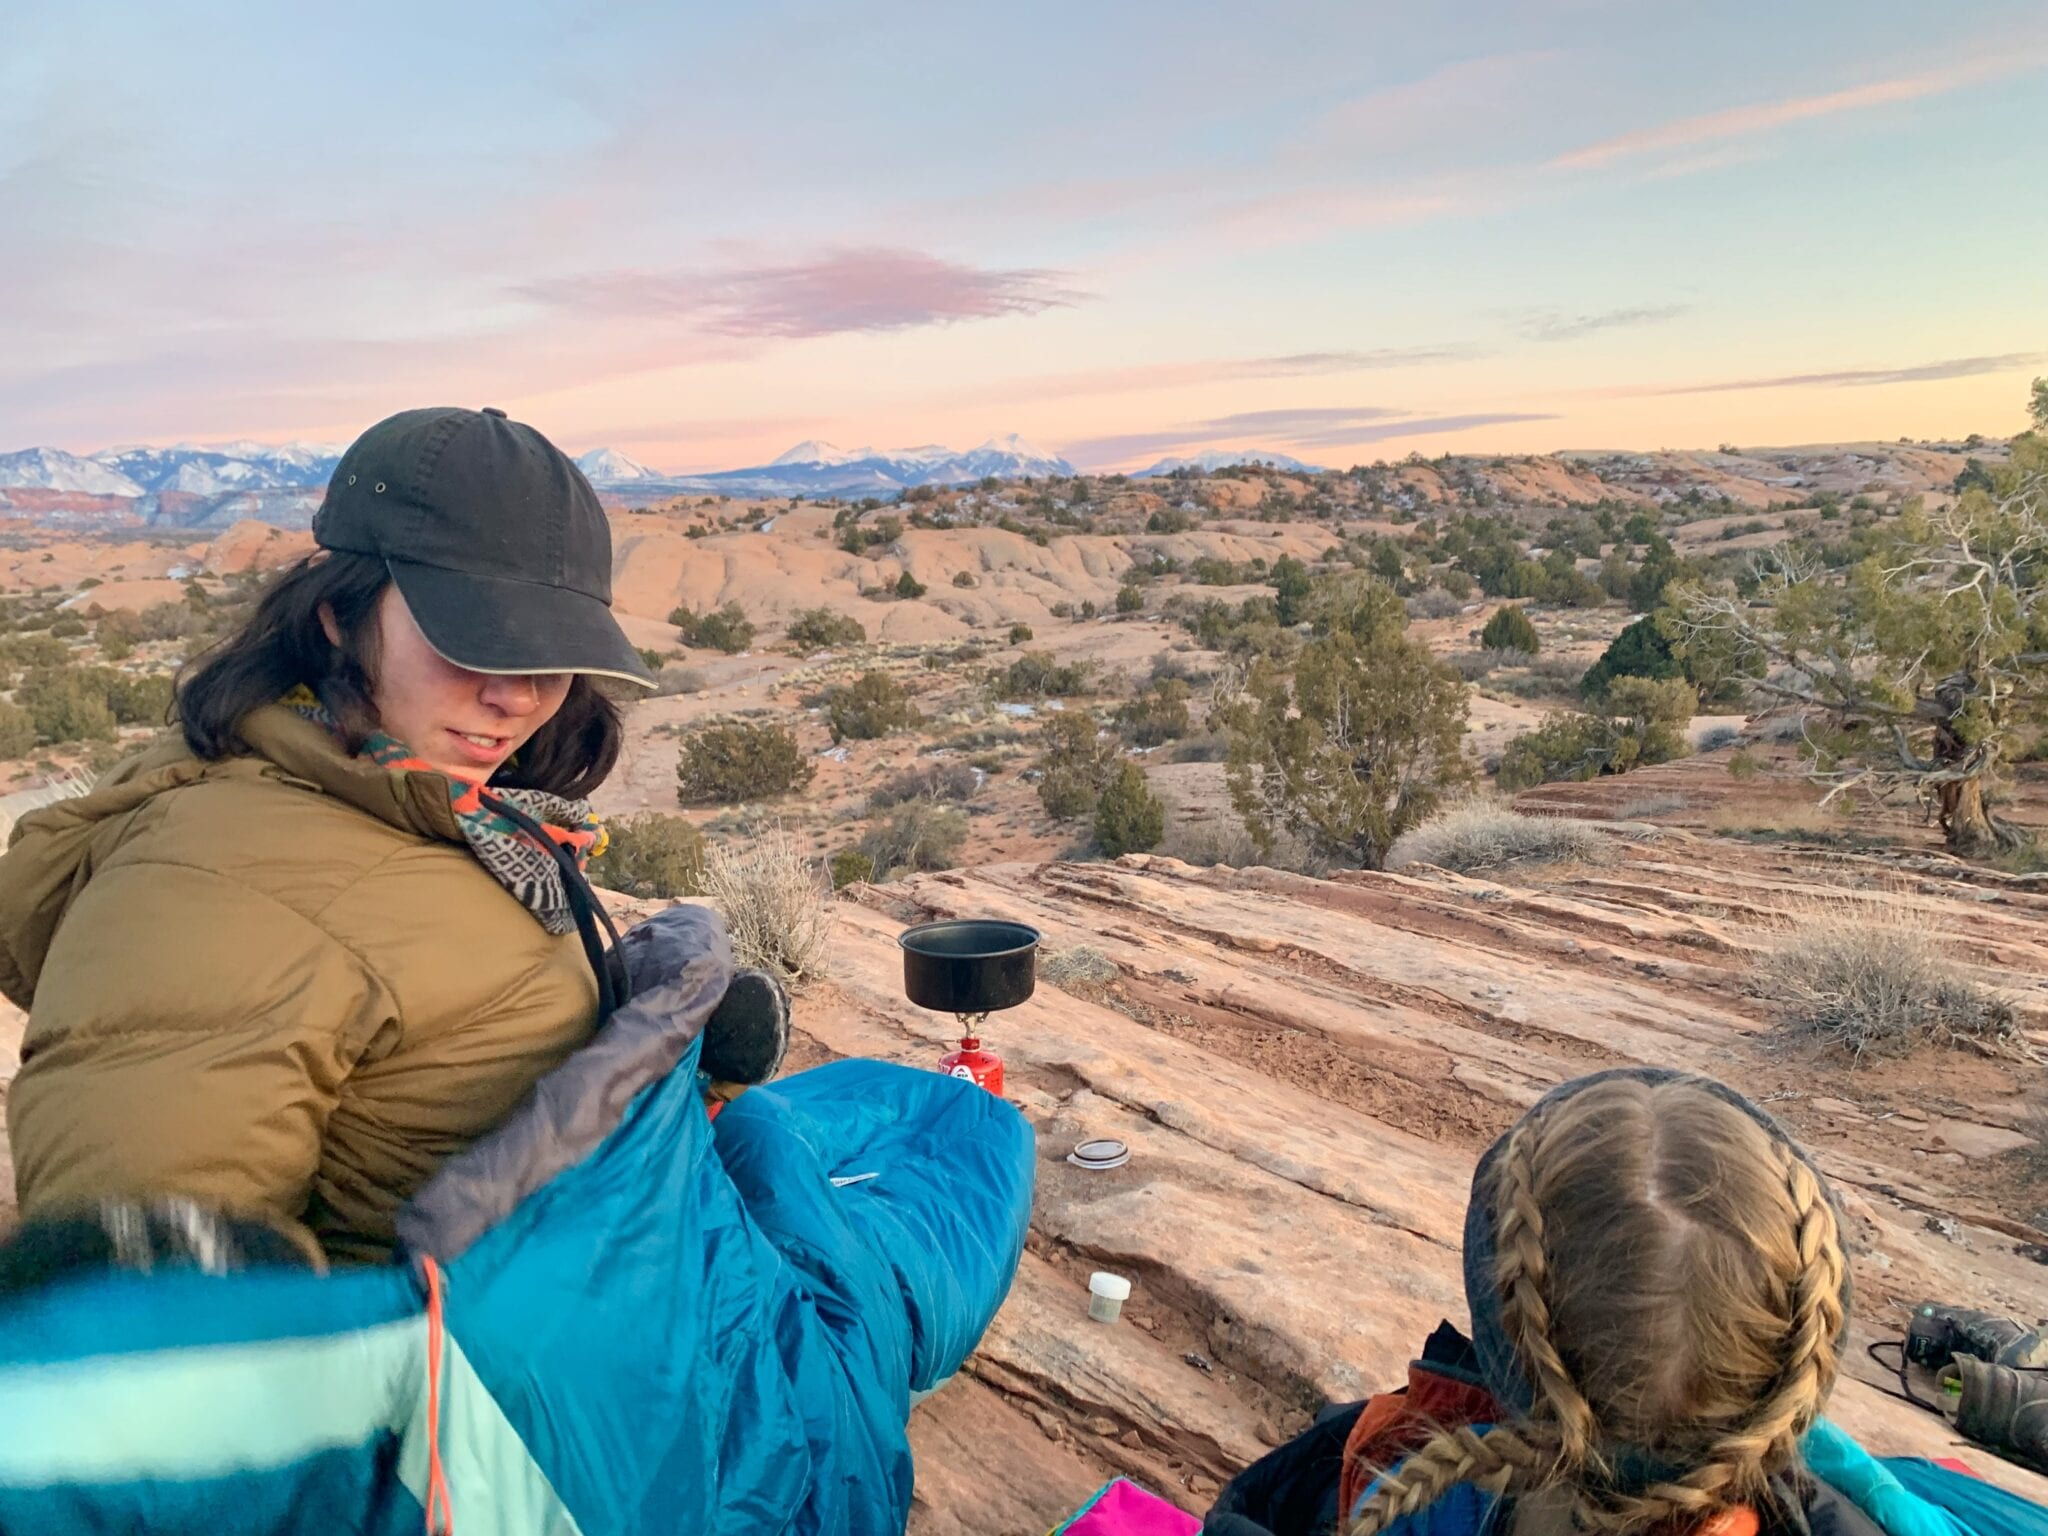 Two hikers make dinner on a stove at sunset